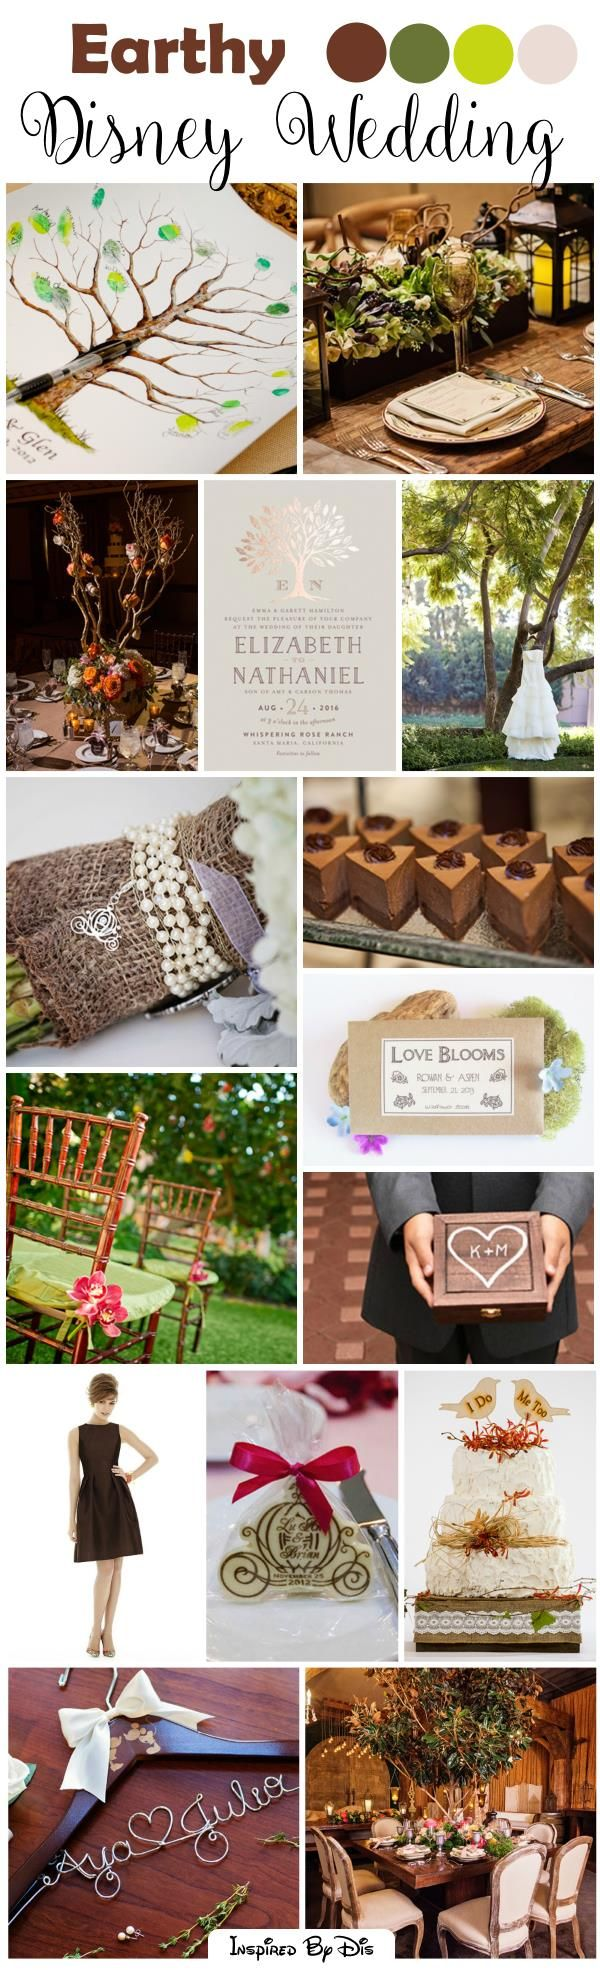 Natural Earthy Disney Wedding Inspiration